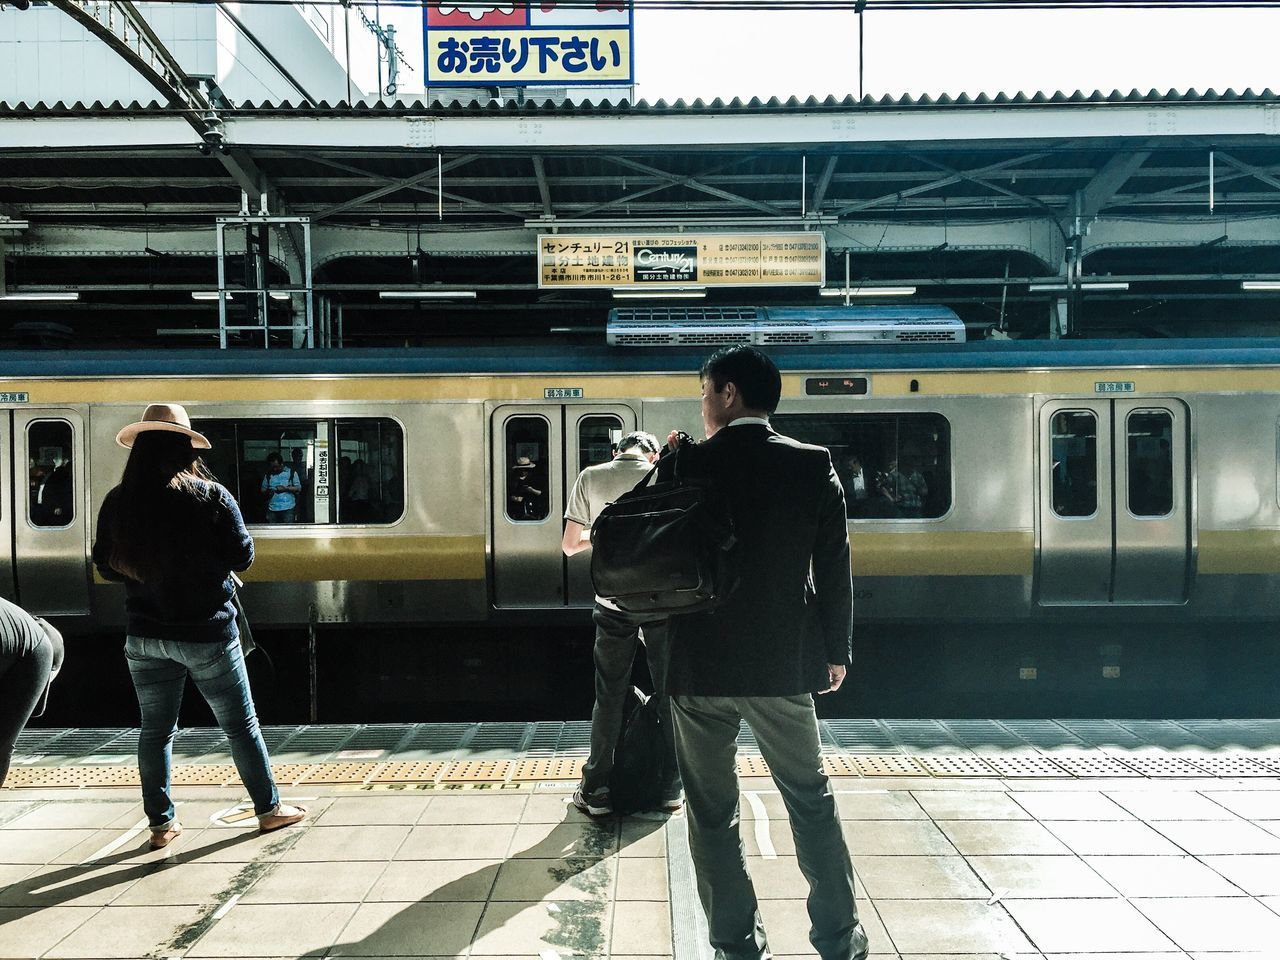 Transportation Full Length Public Transportation Train - Vehicle Travel Railroad Station Casual Clothing Journey Rear View Mode Of Transport Passenger Waiting Subway Platform Two People Standing Lifestyles Indoors  City Life Commuter Subway Train